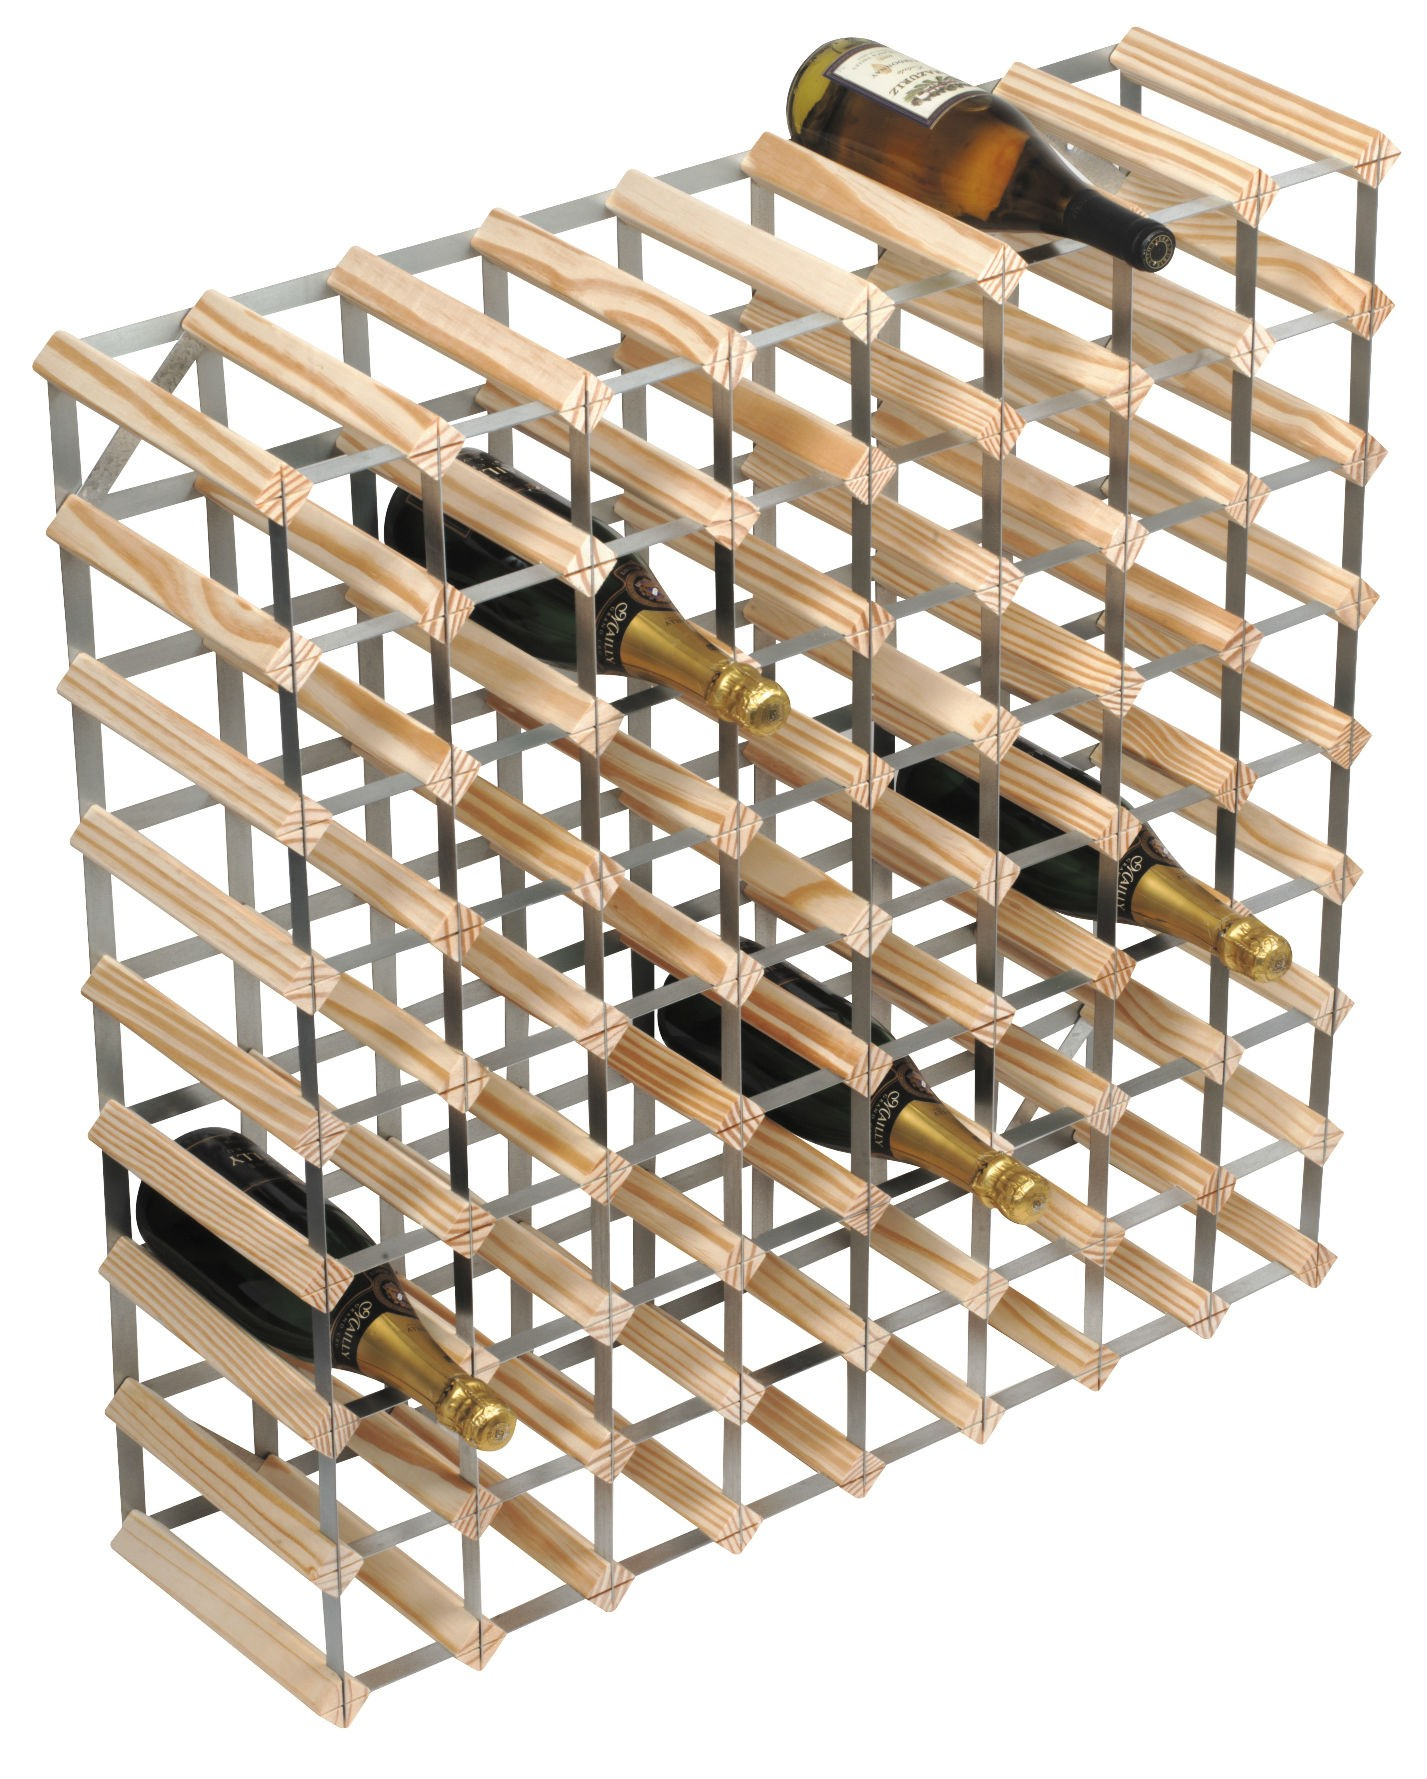 72 bottle traditional wooden wine rack 8x8. Black Bedroom Furniture Sets. Home Design Ideas